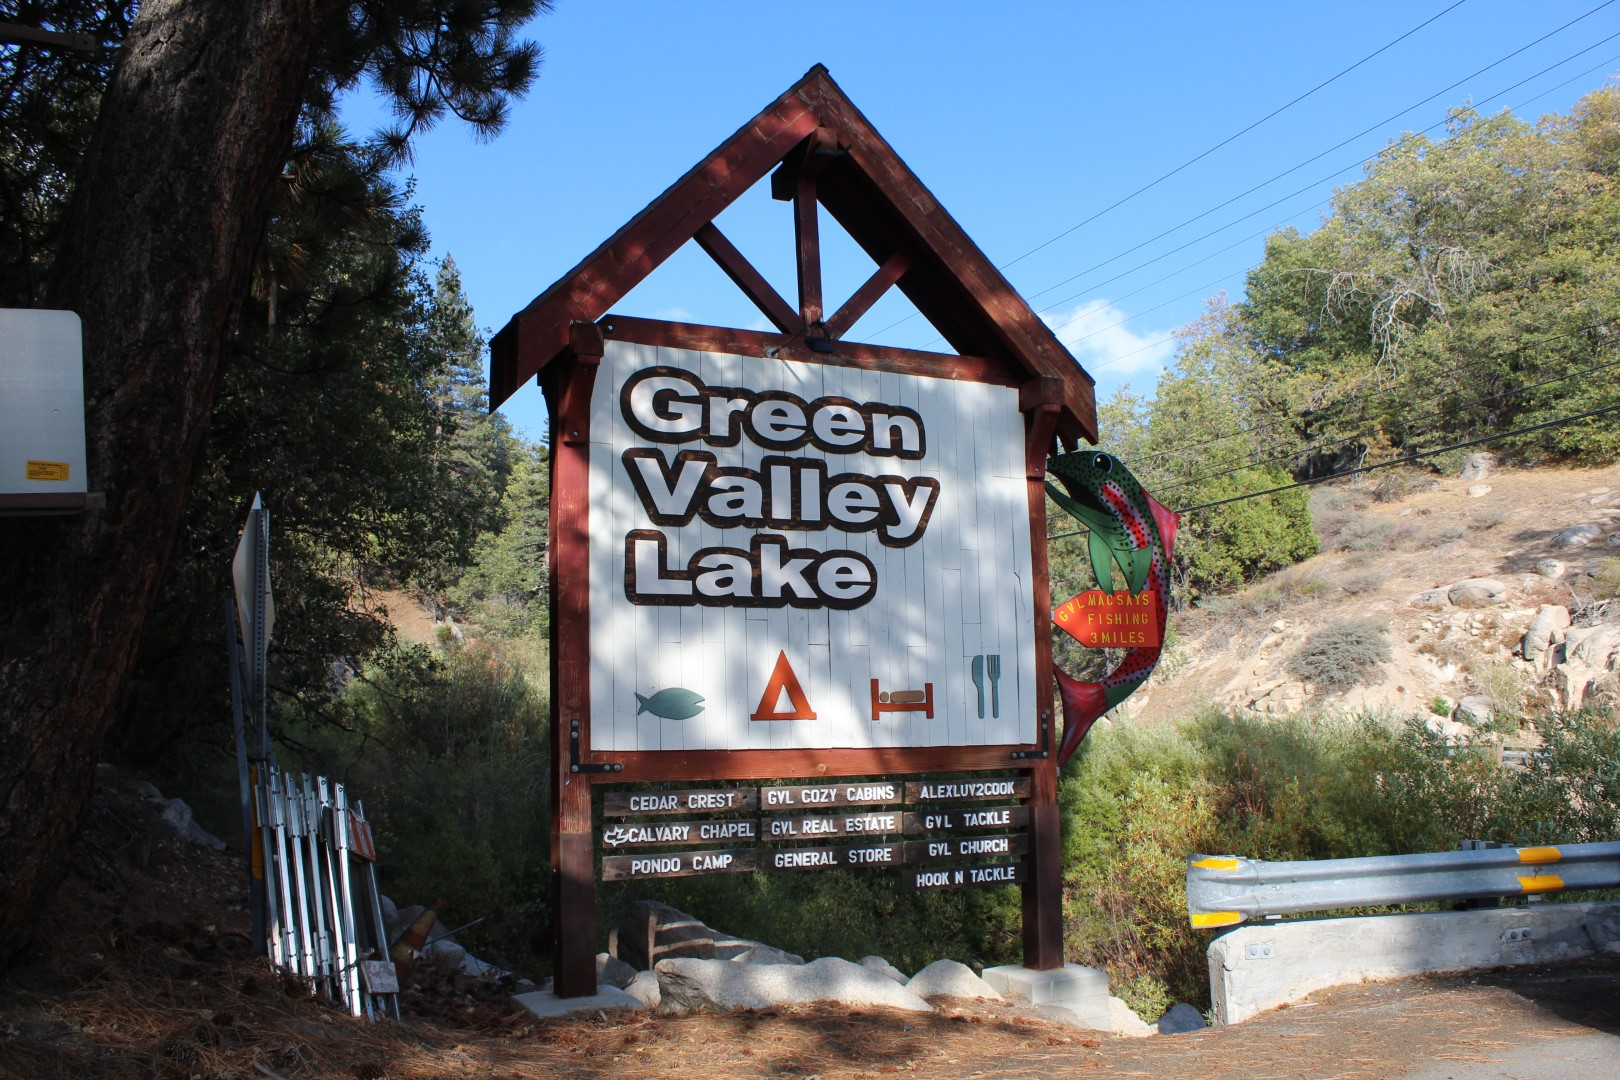 Green Valley Lake